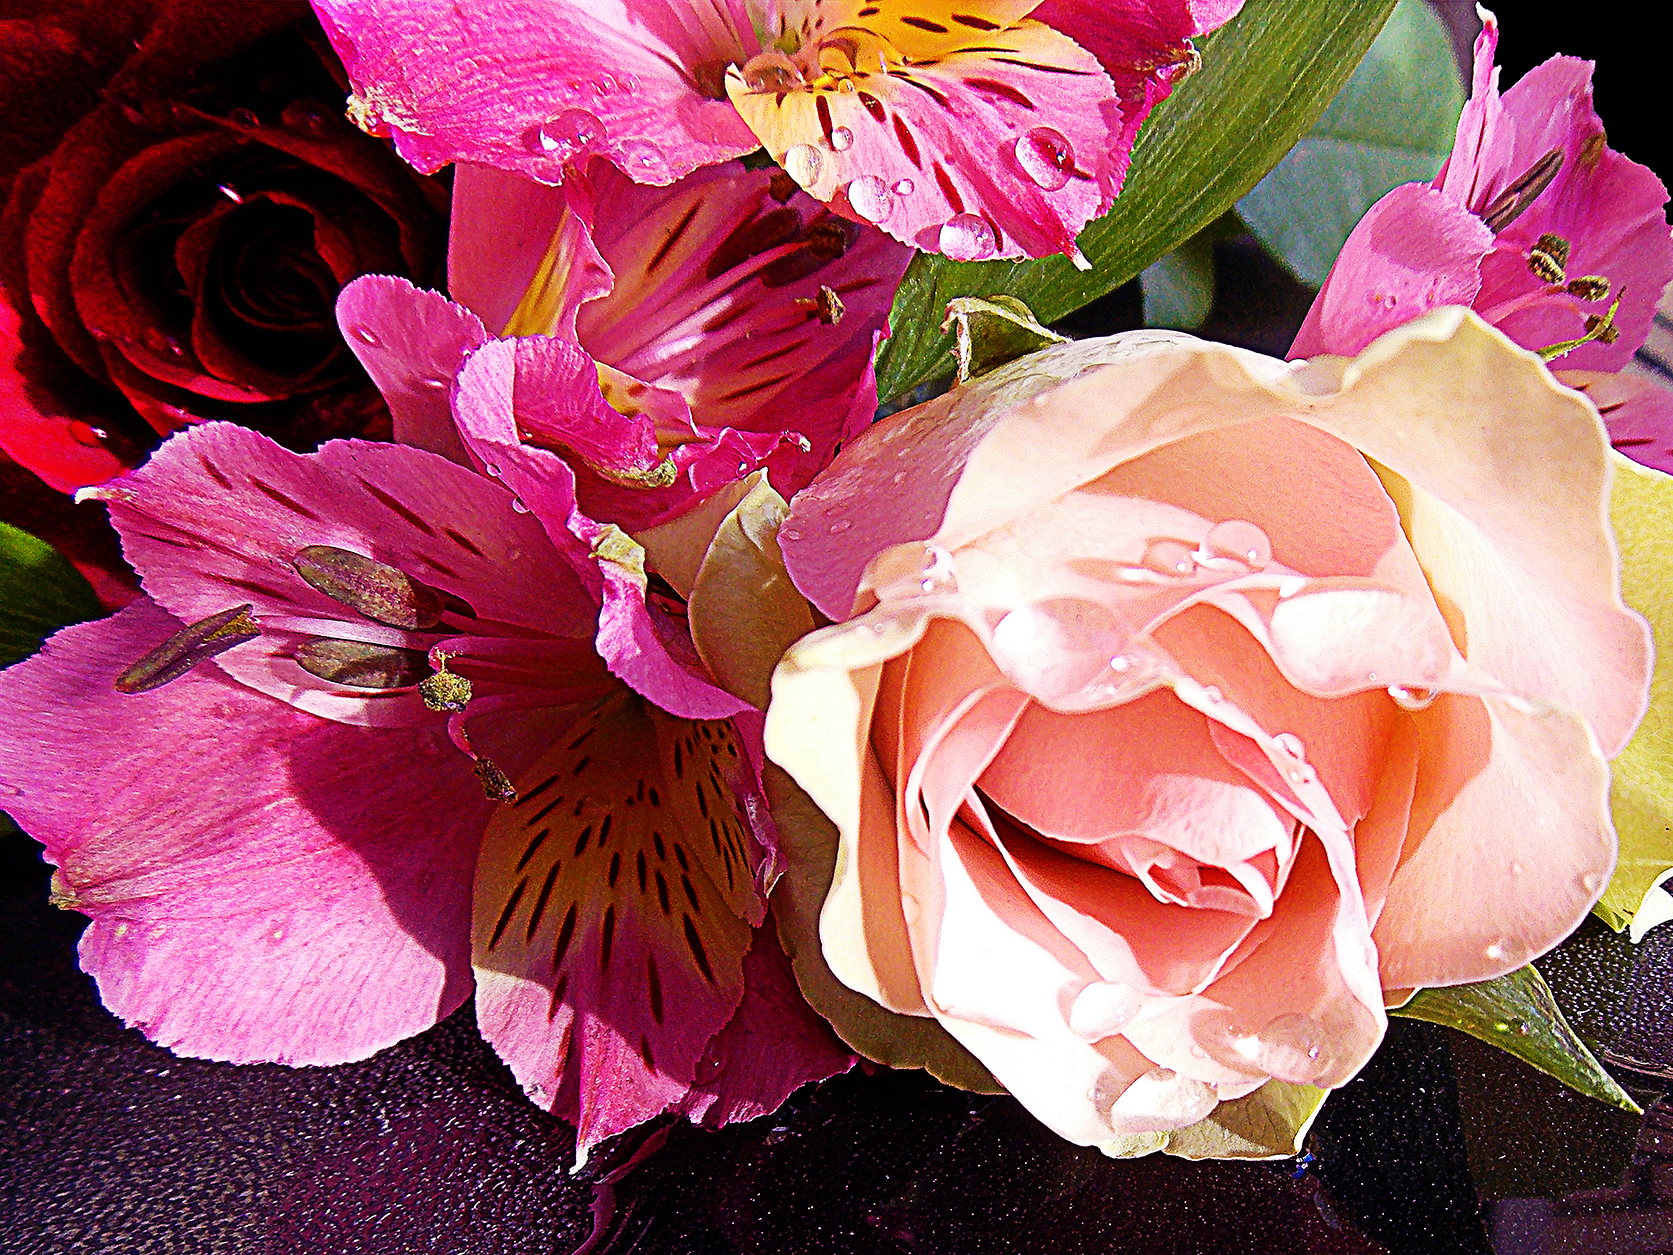 picture album called 'nice flowers'   uploaded by binder, Beautiful flower